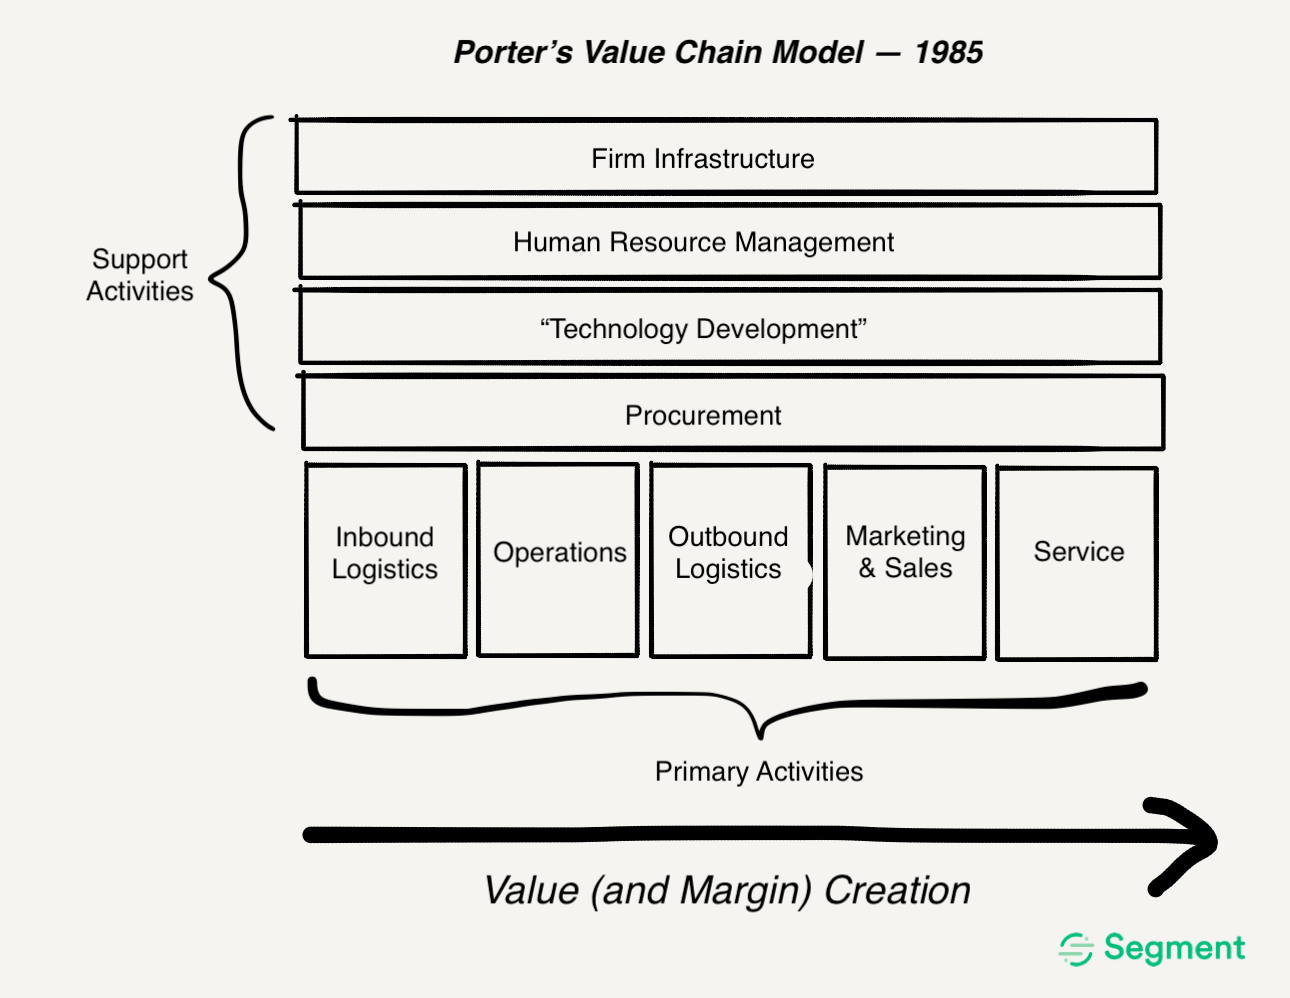 The value chain of businesses in 1985